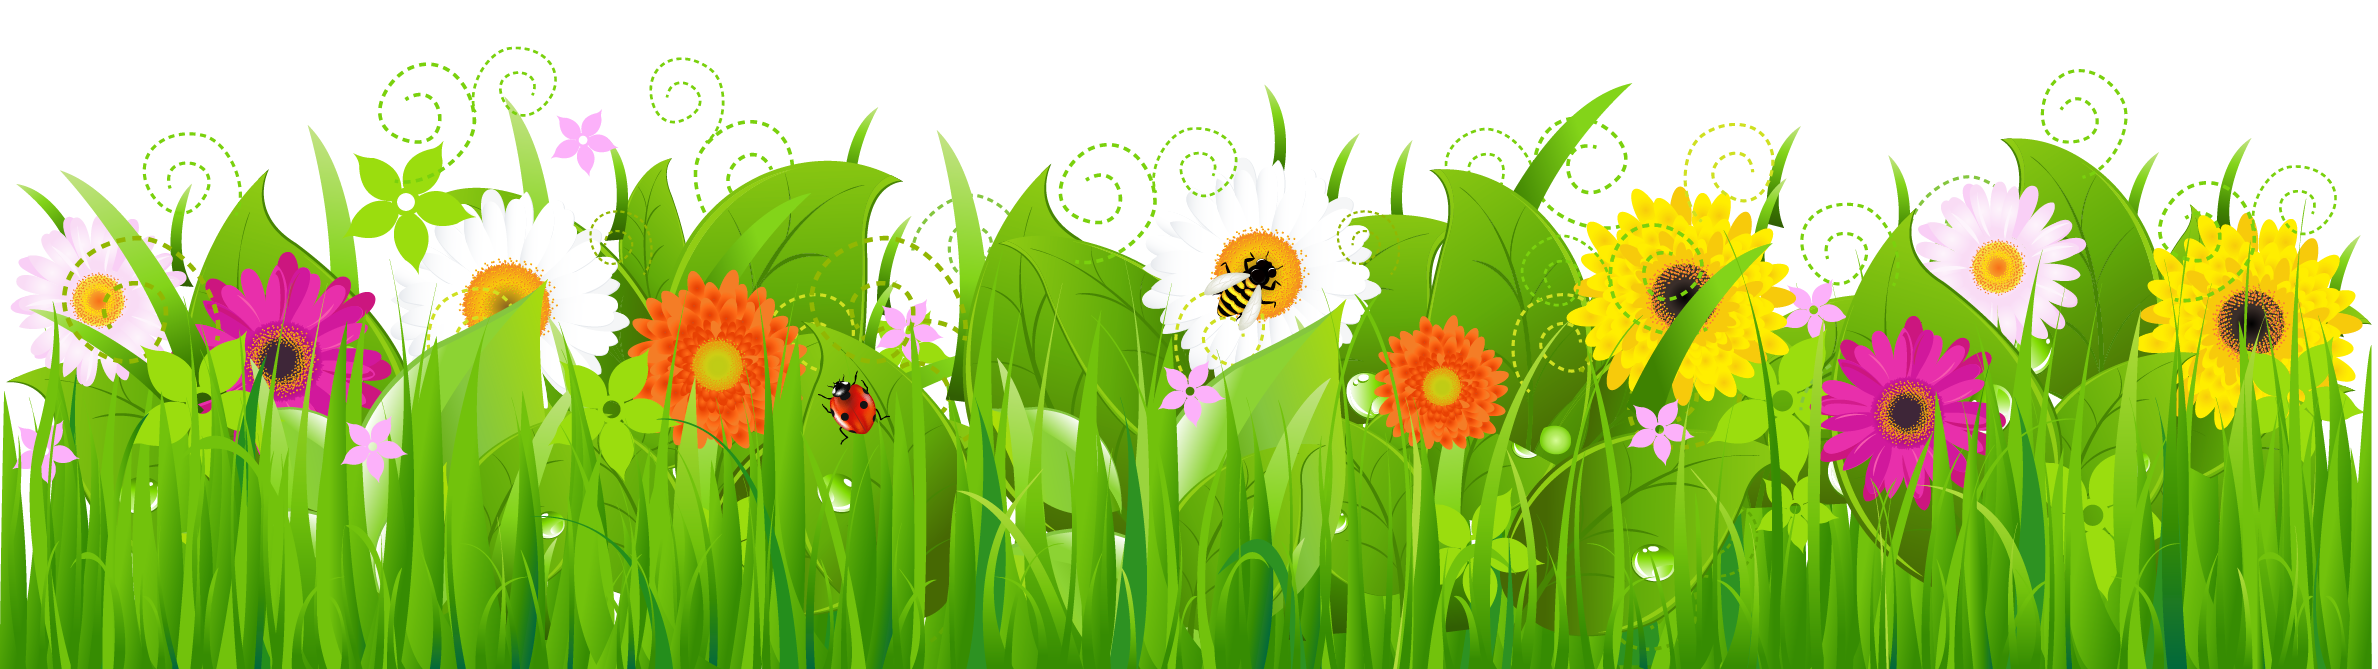 graphic freeuse green grass flowers clipart #63241363